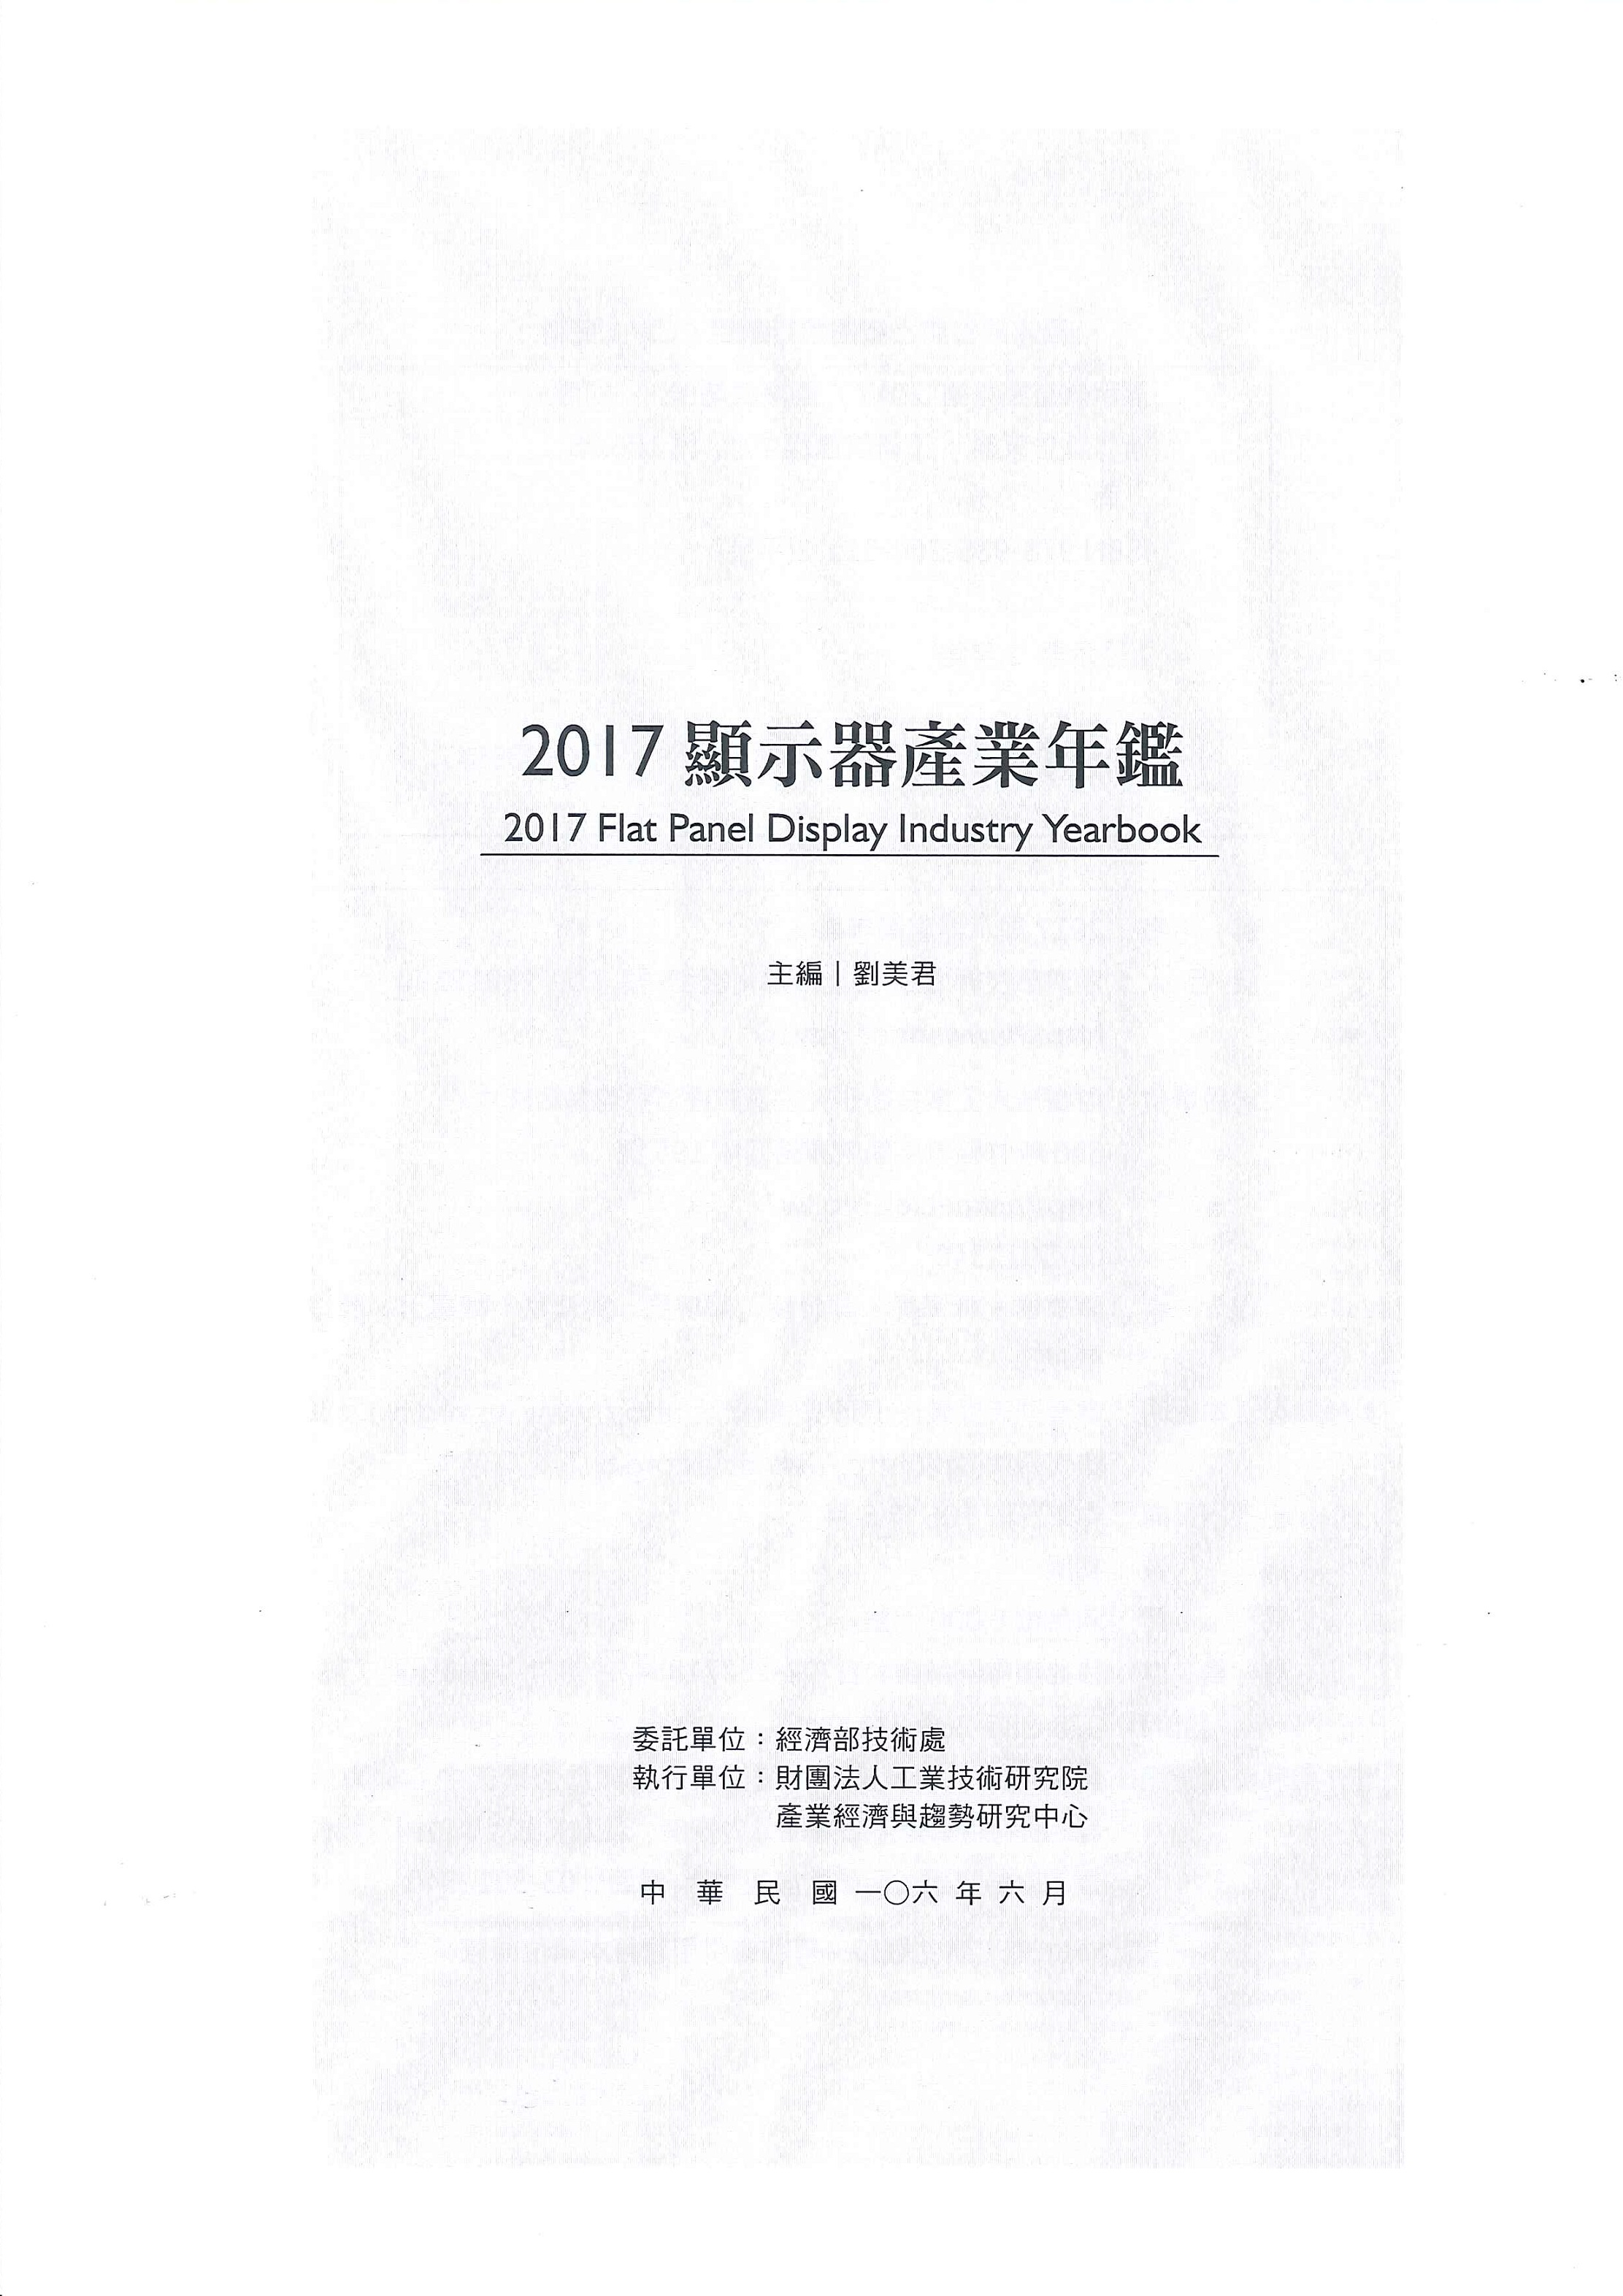 顯示器產業年鑑=Flat panel display industry yearbook